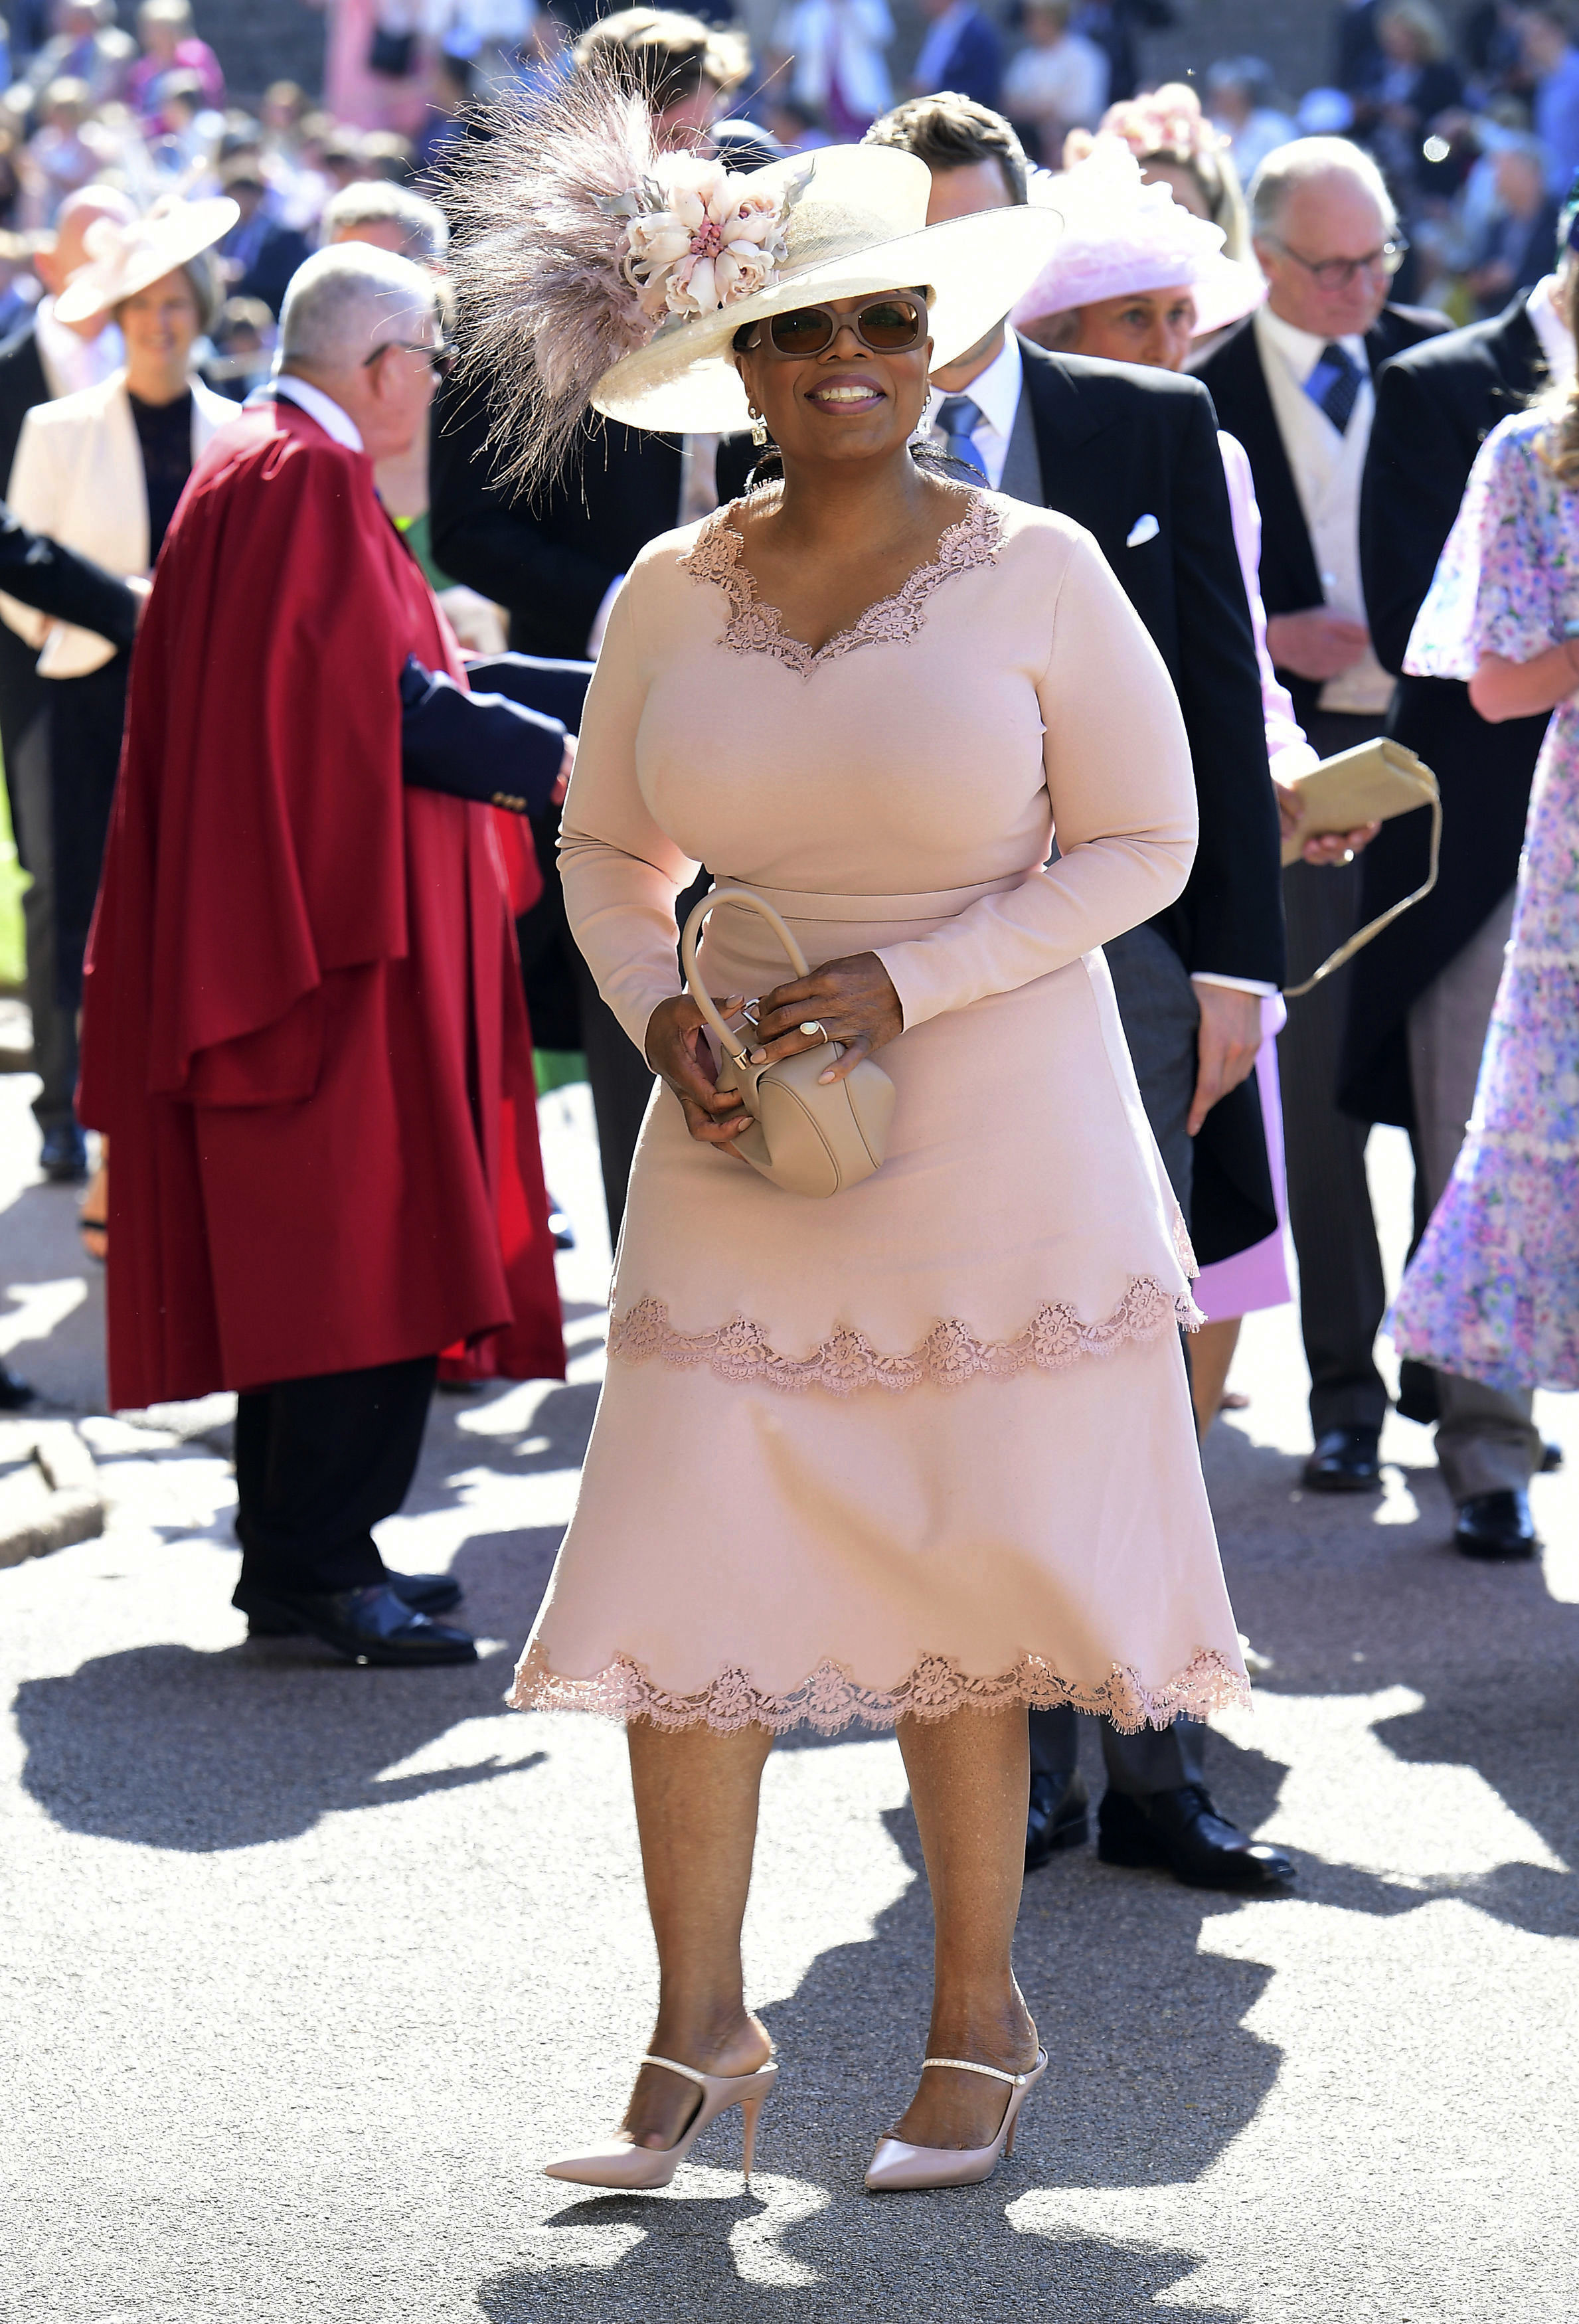 Photos of guests at Prince Harry Meghan Markle royal wedding 2018